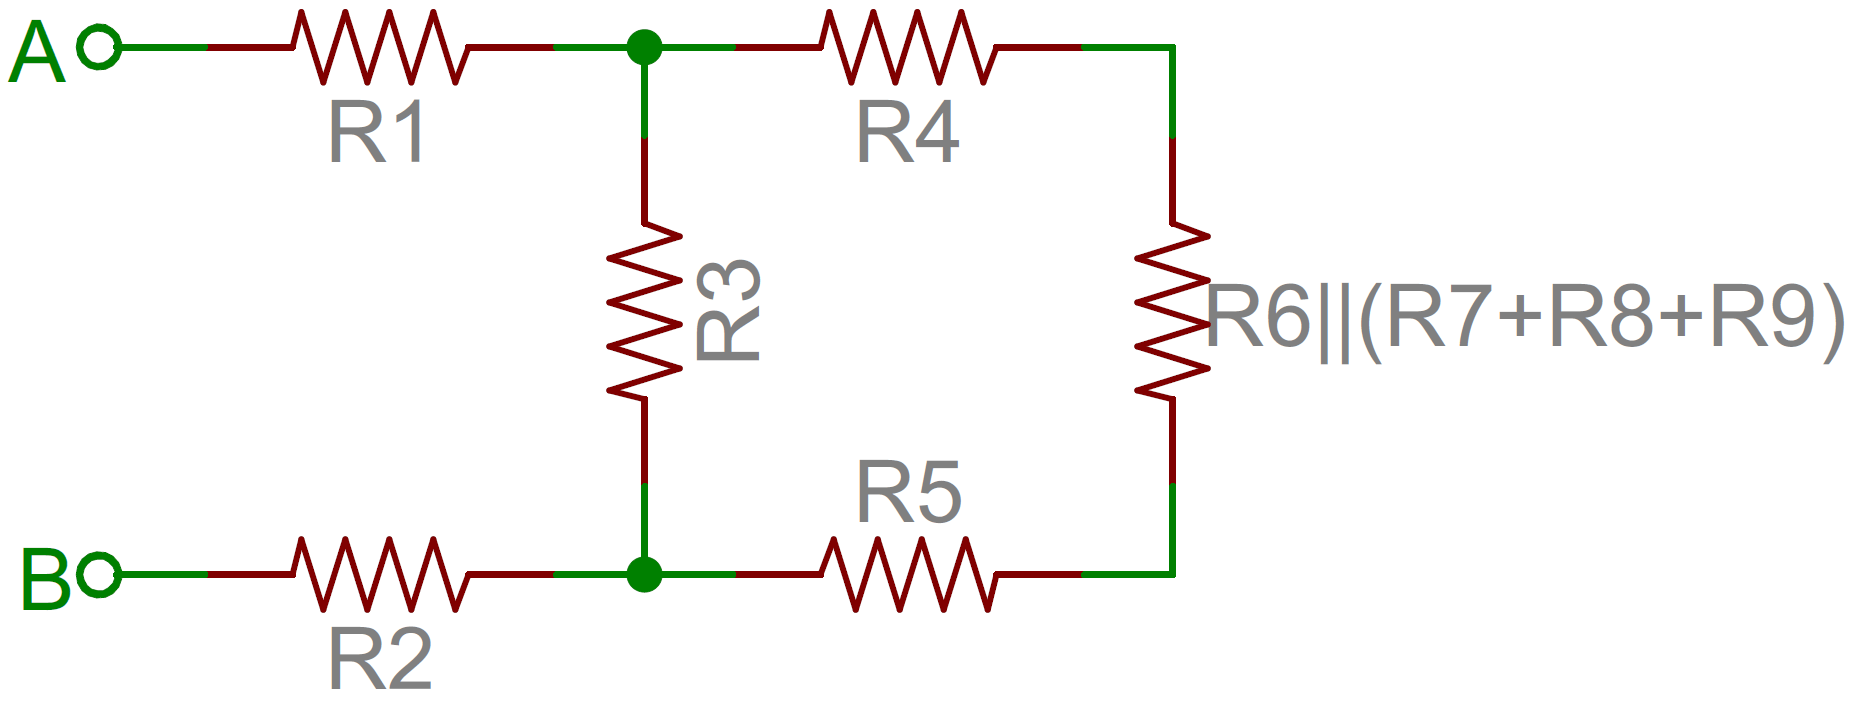 hight resolution of resistor network simplified